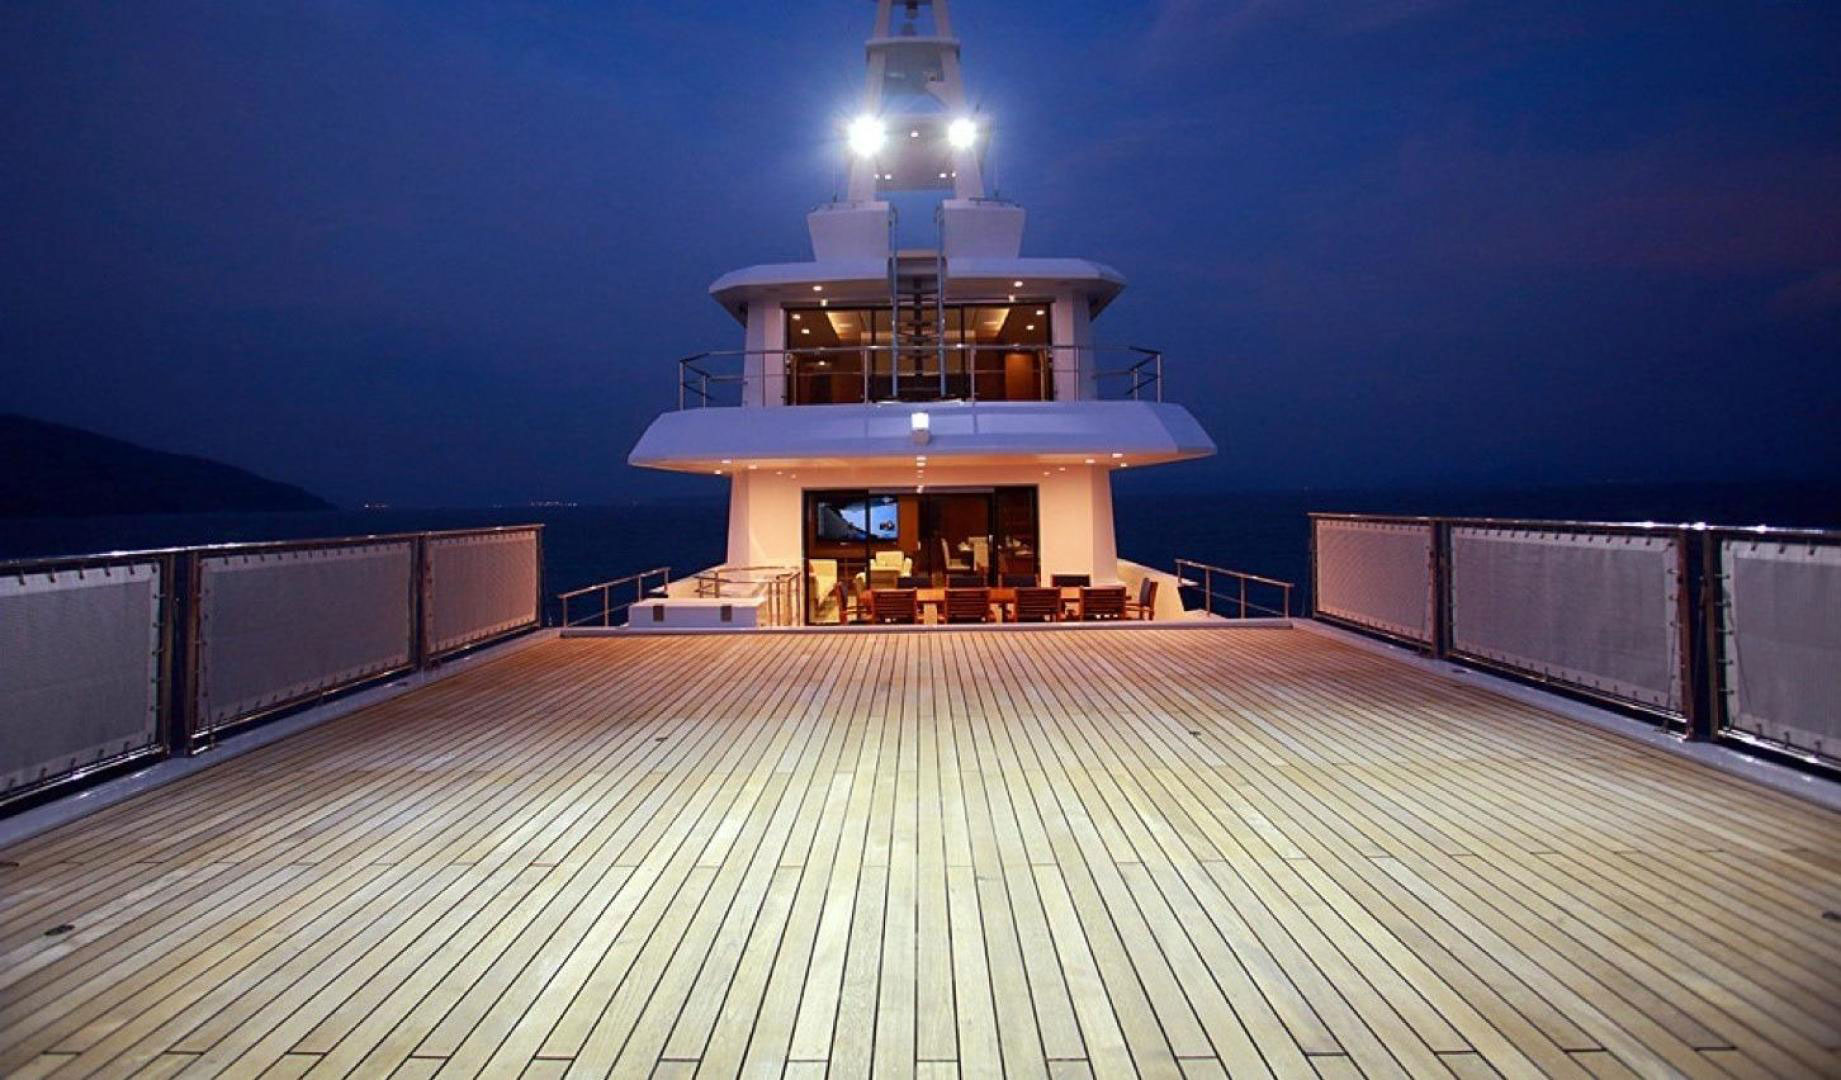 150-ft.-Luxury-Power-Yacht-–-Up-to-200-People -open-deck